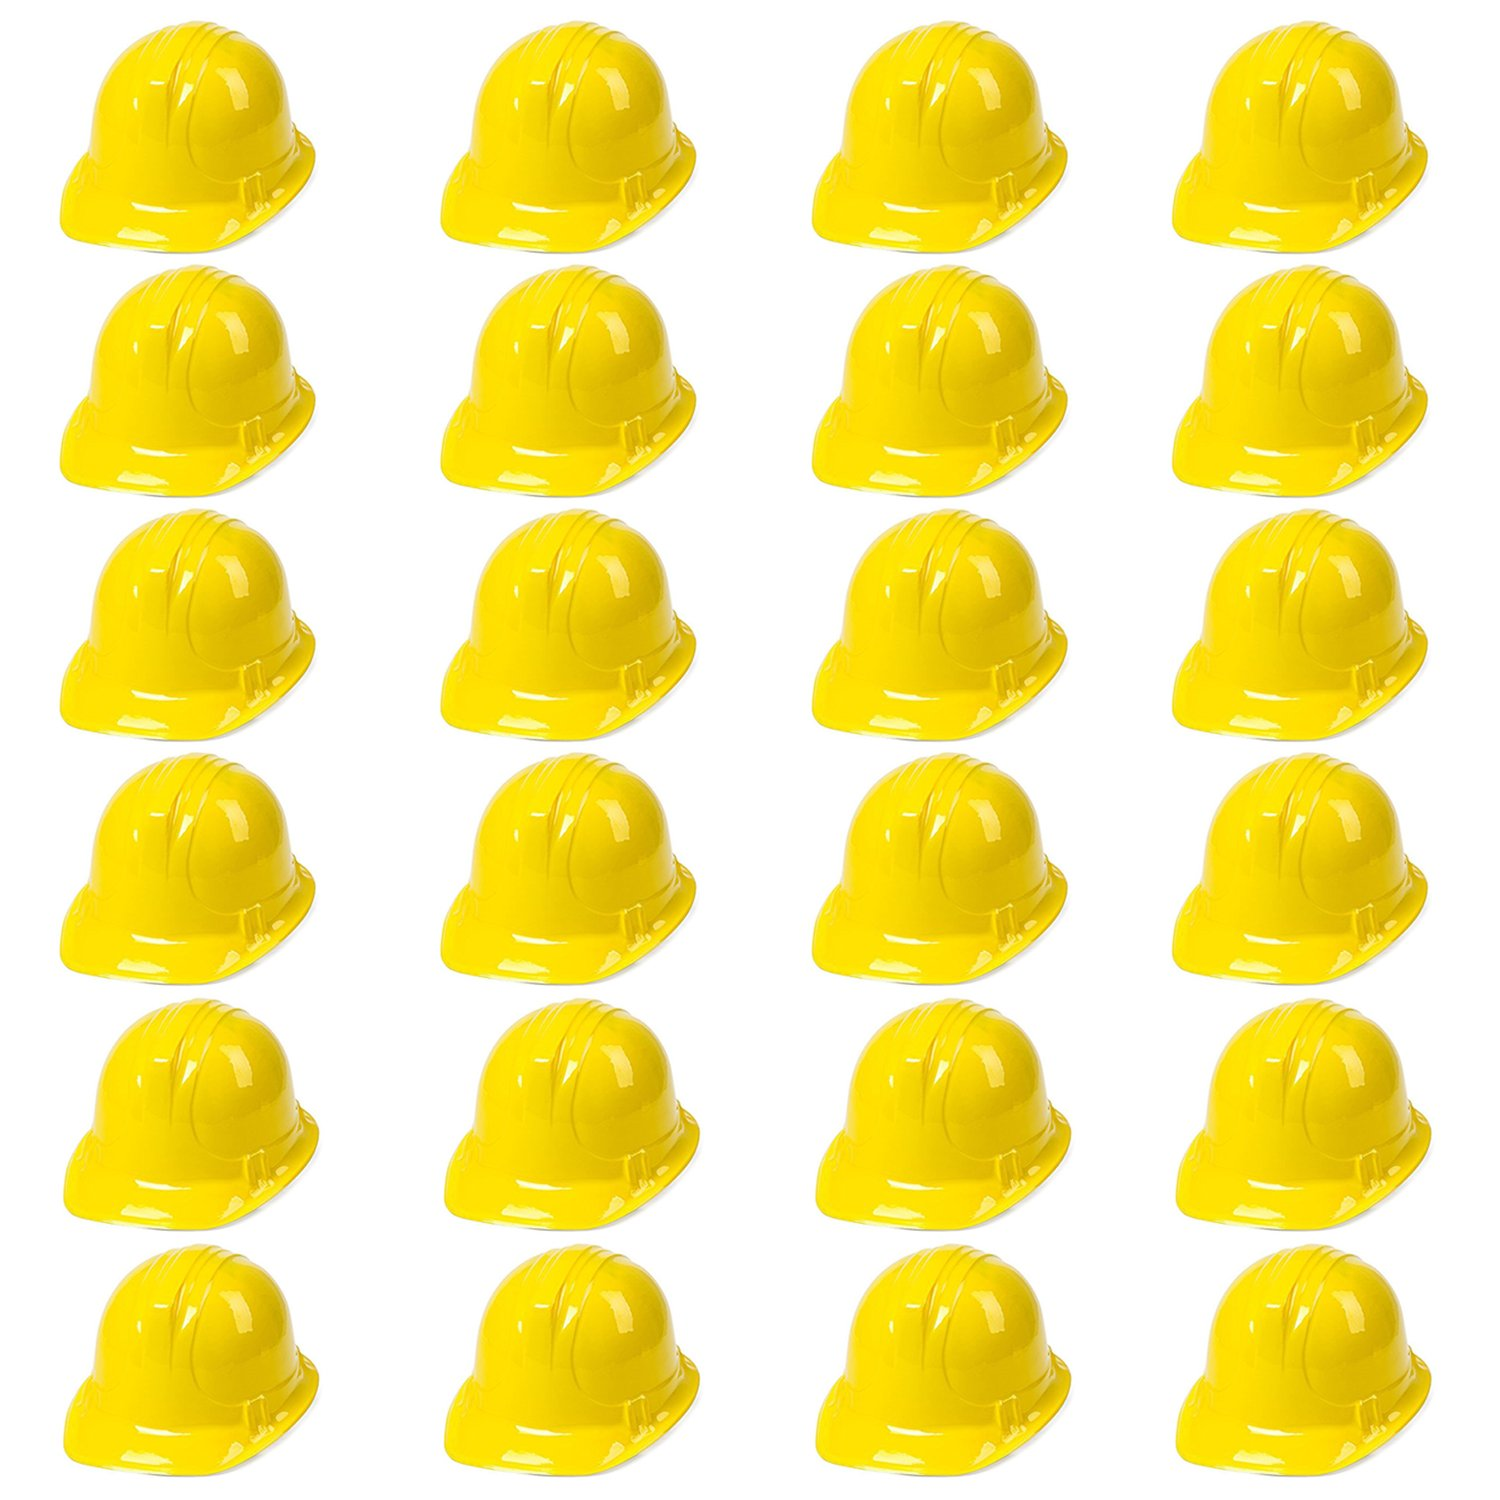 Yellow Construction Hat Toy For Kids Dress Up Theme Party Fun Pack | 24 - Pack